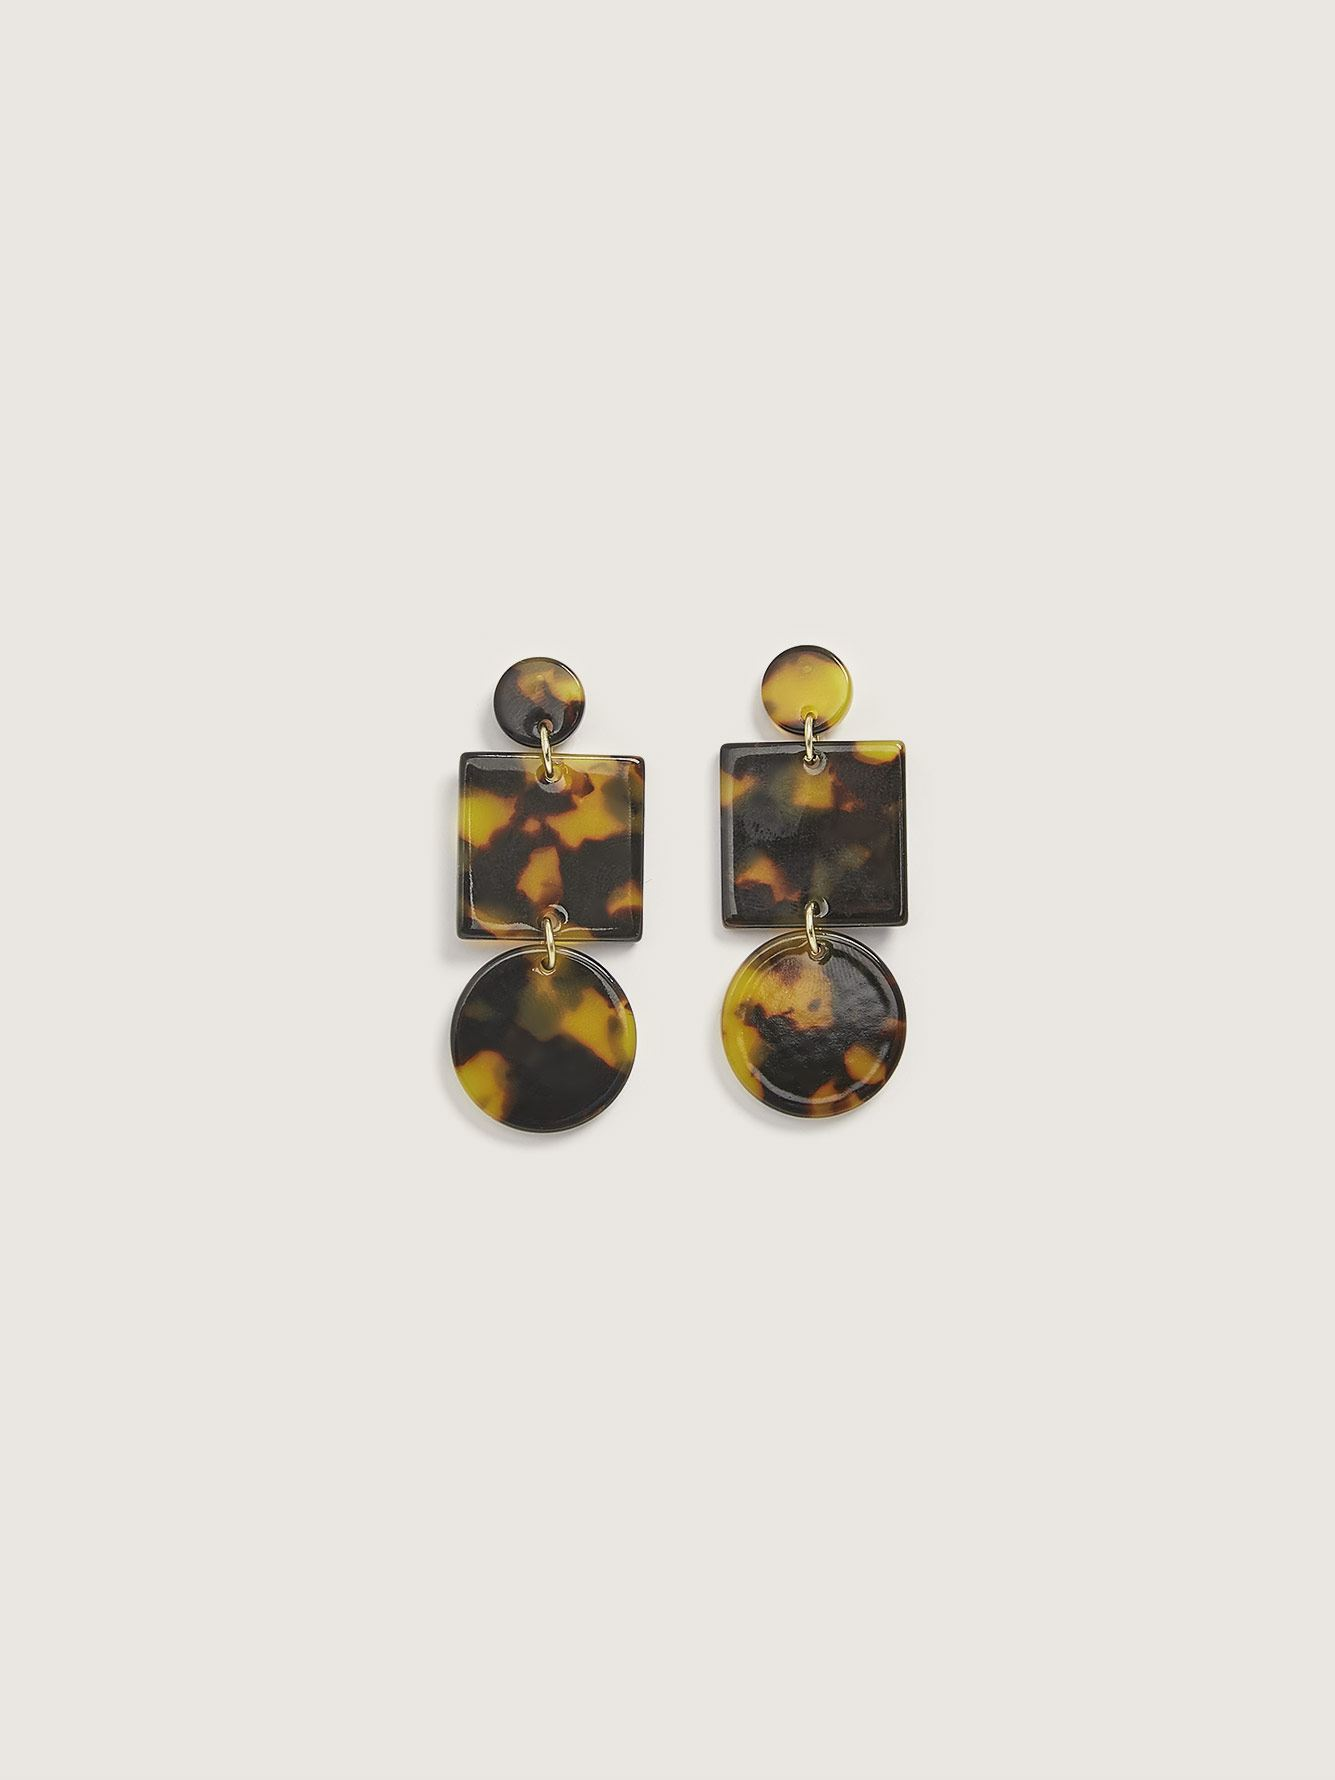 Geometric Totem Earrings - Sundara Mar